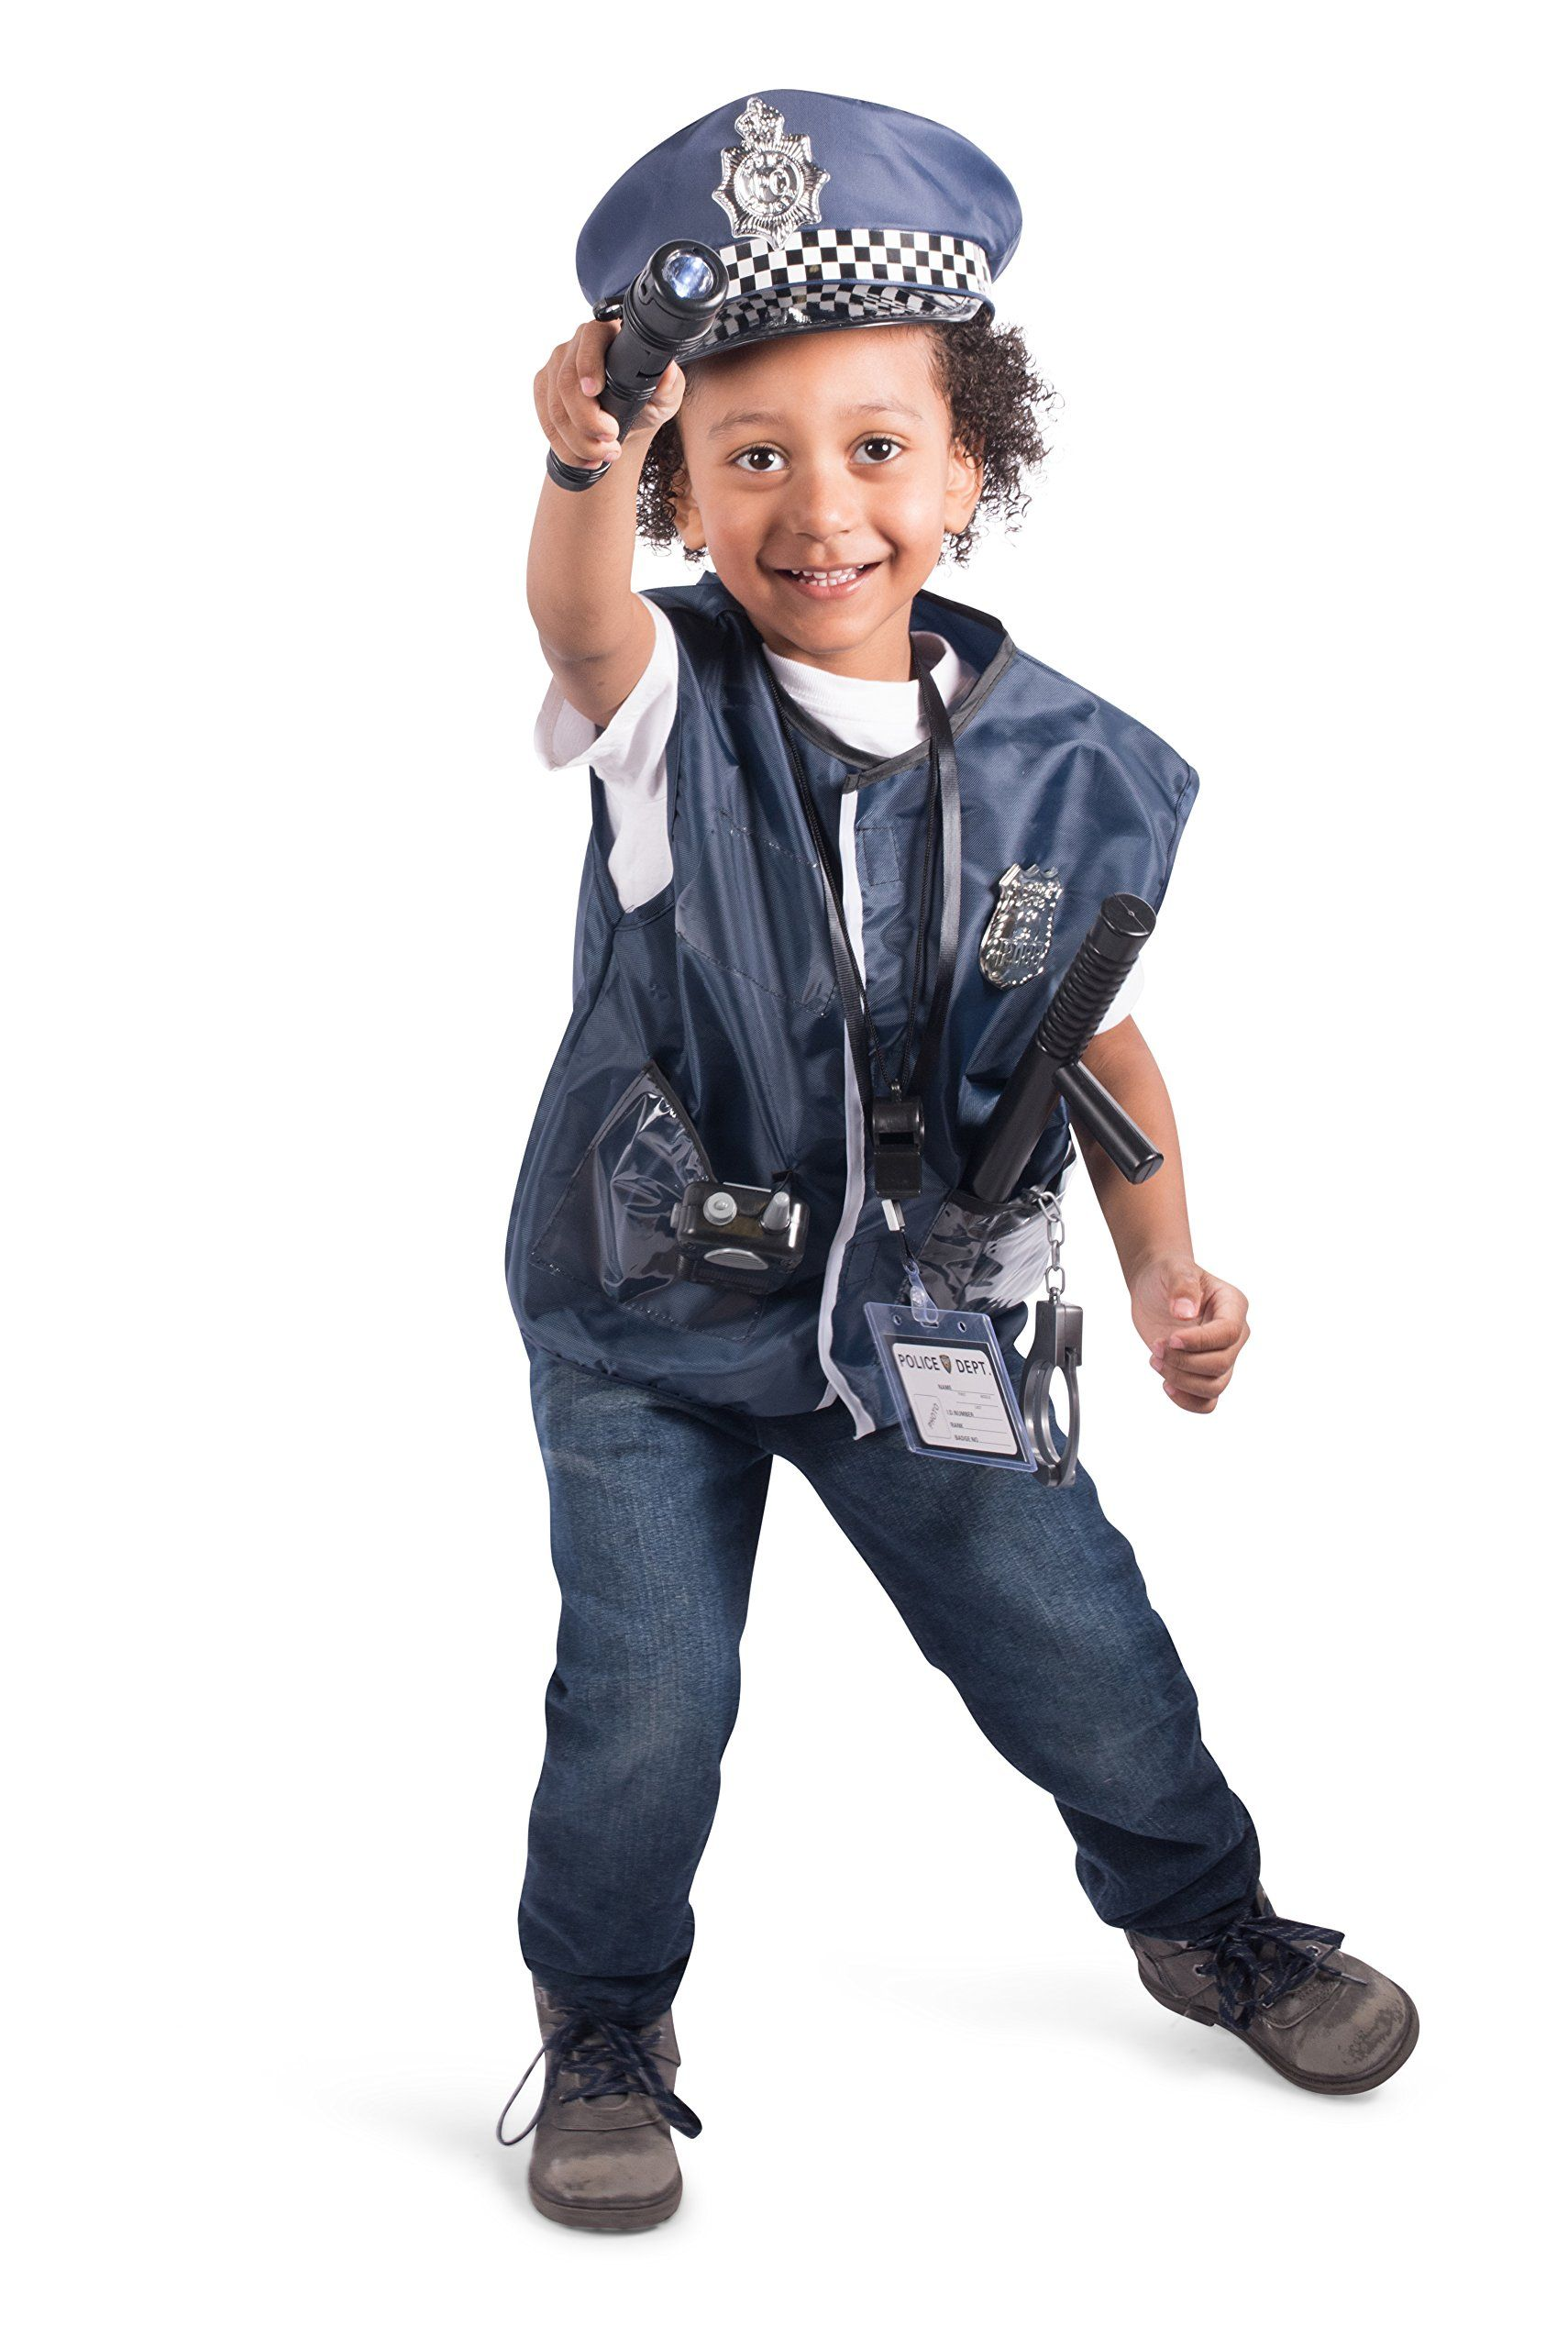 12 Pcs Police Costume For Kids With Toy Role Play Kit For Swat Detective Fbi Halloween And Dressup Click On Th Police Costume Kids Police Costume Cop Costume